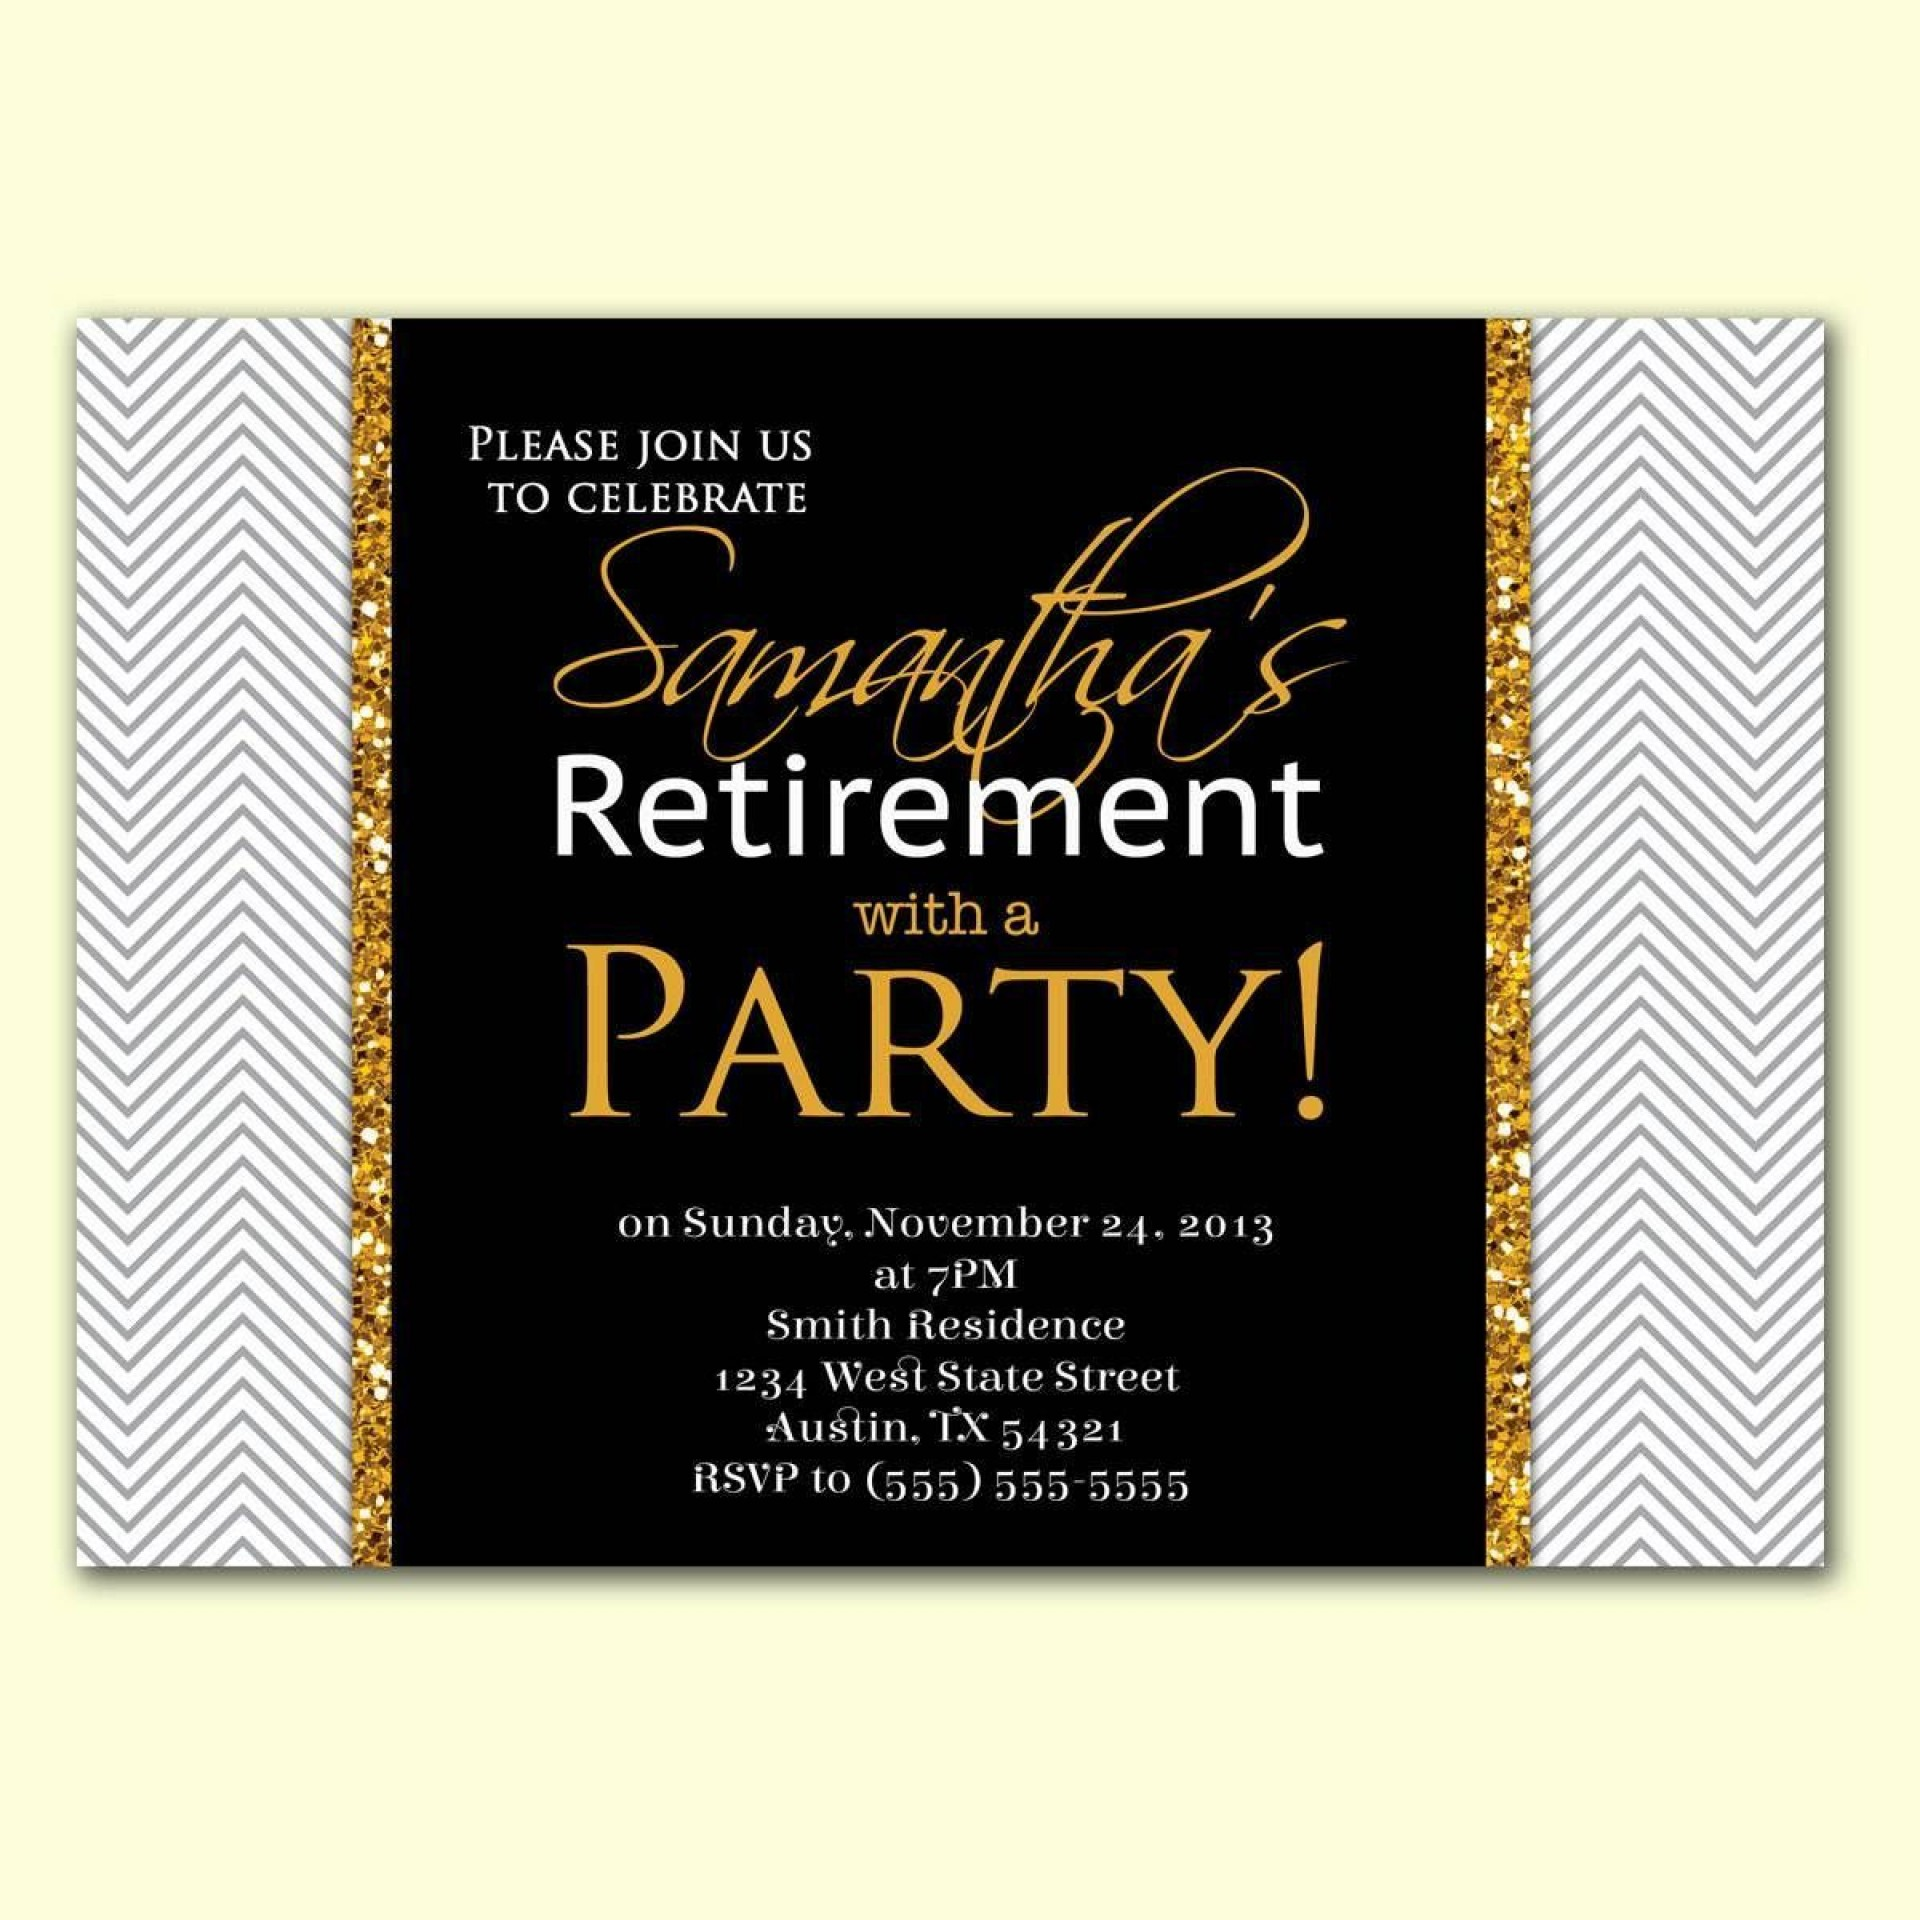 002 Imposing Retirement Party Invite Template Word Free Highest Quality 1920